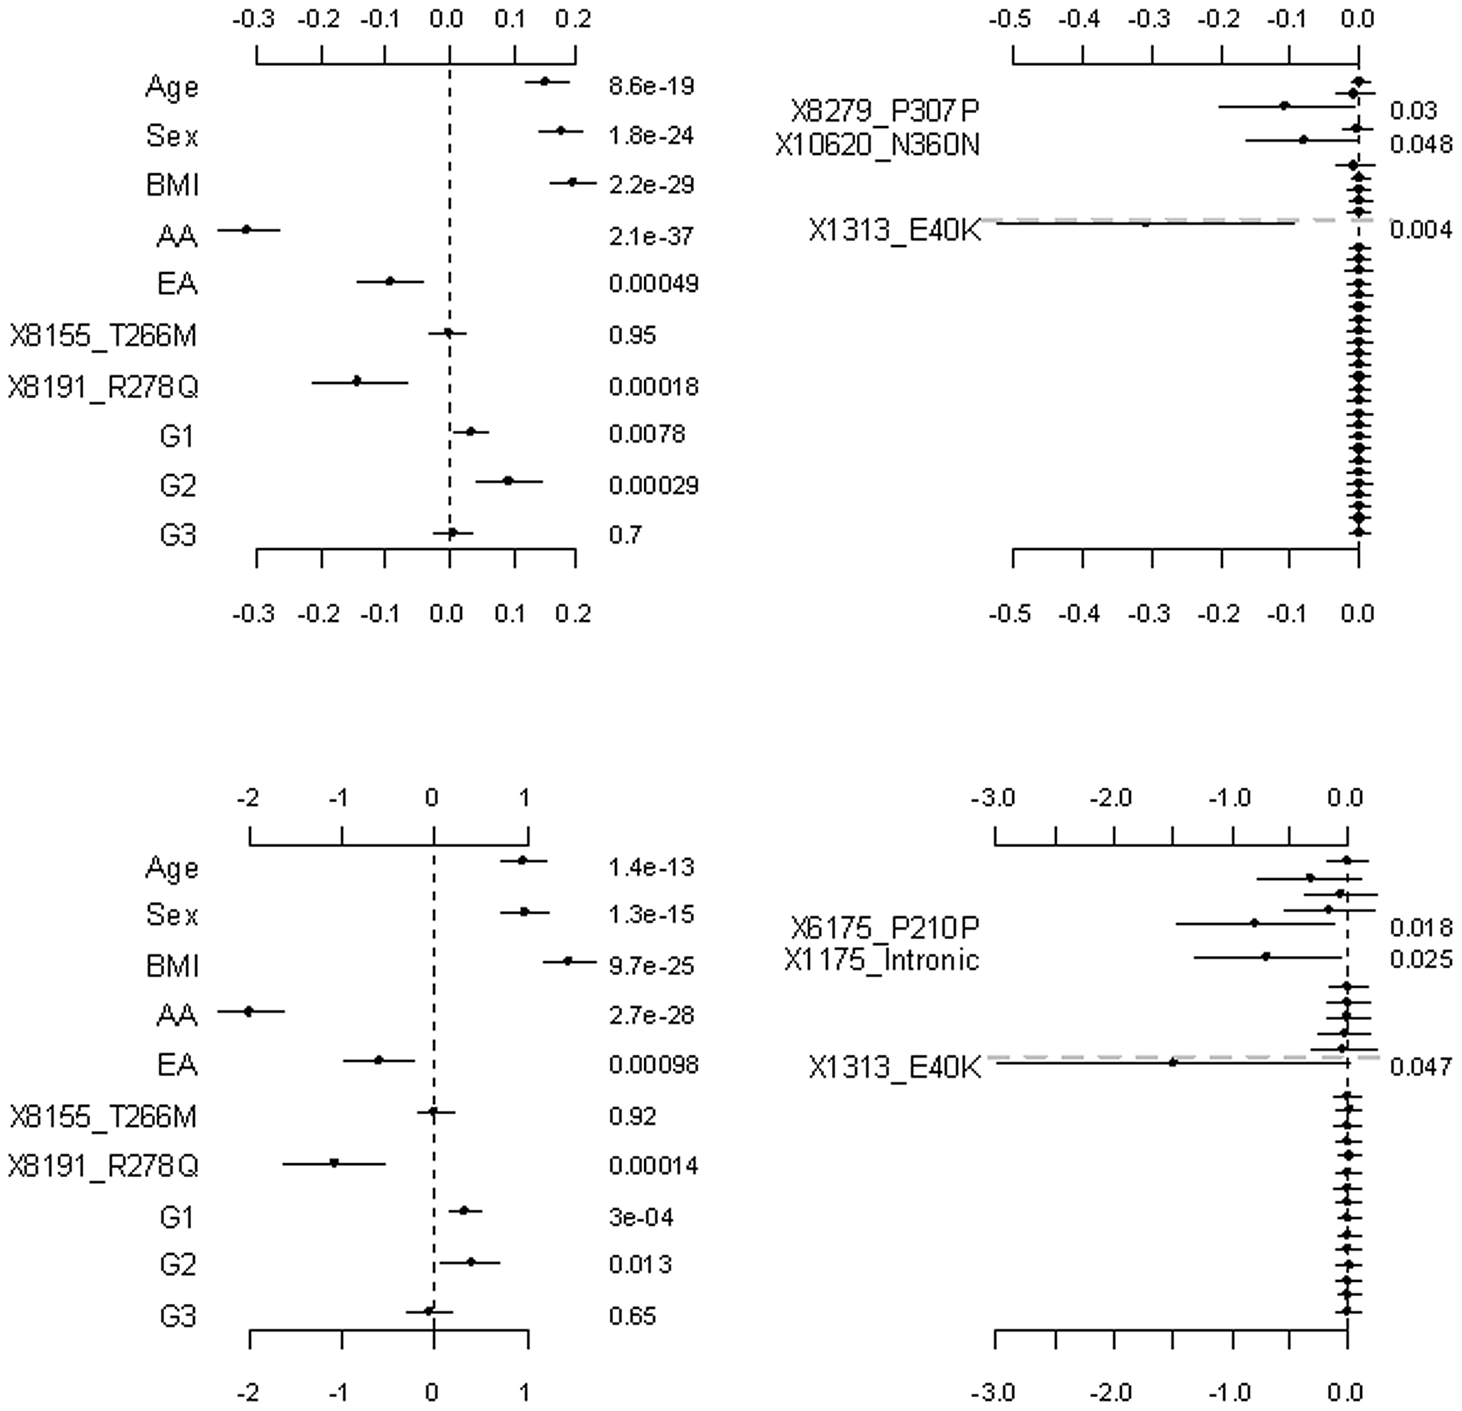 Analyses of the proposed hierarchical GLMs with prior means <i>μ<sub>j</sub></i> = 1 for all variants.